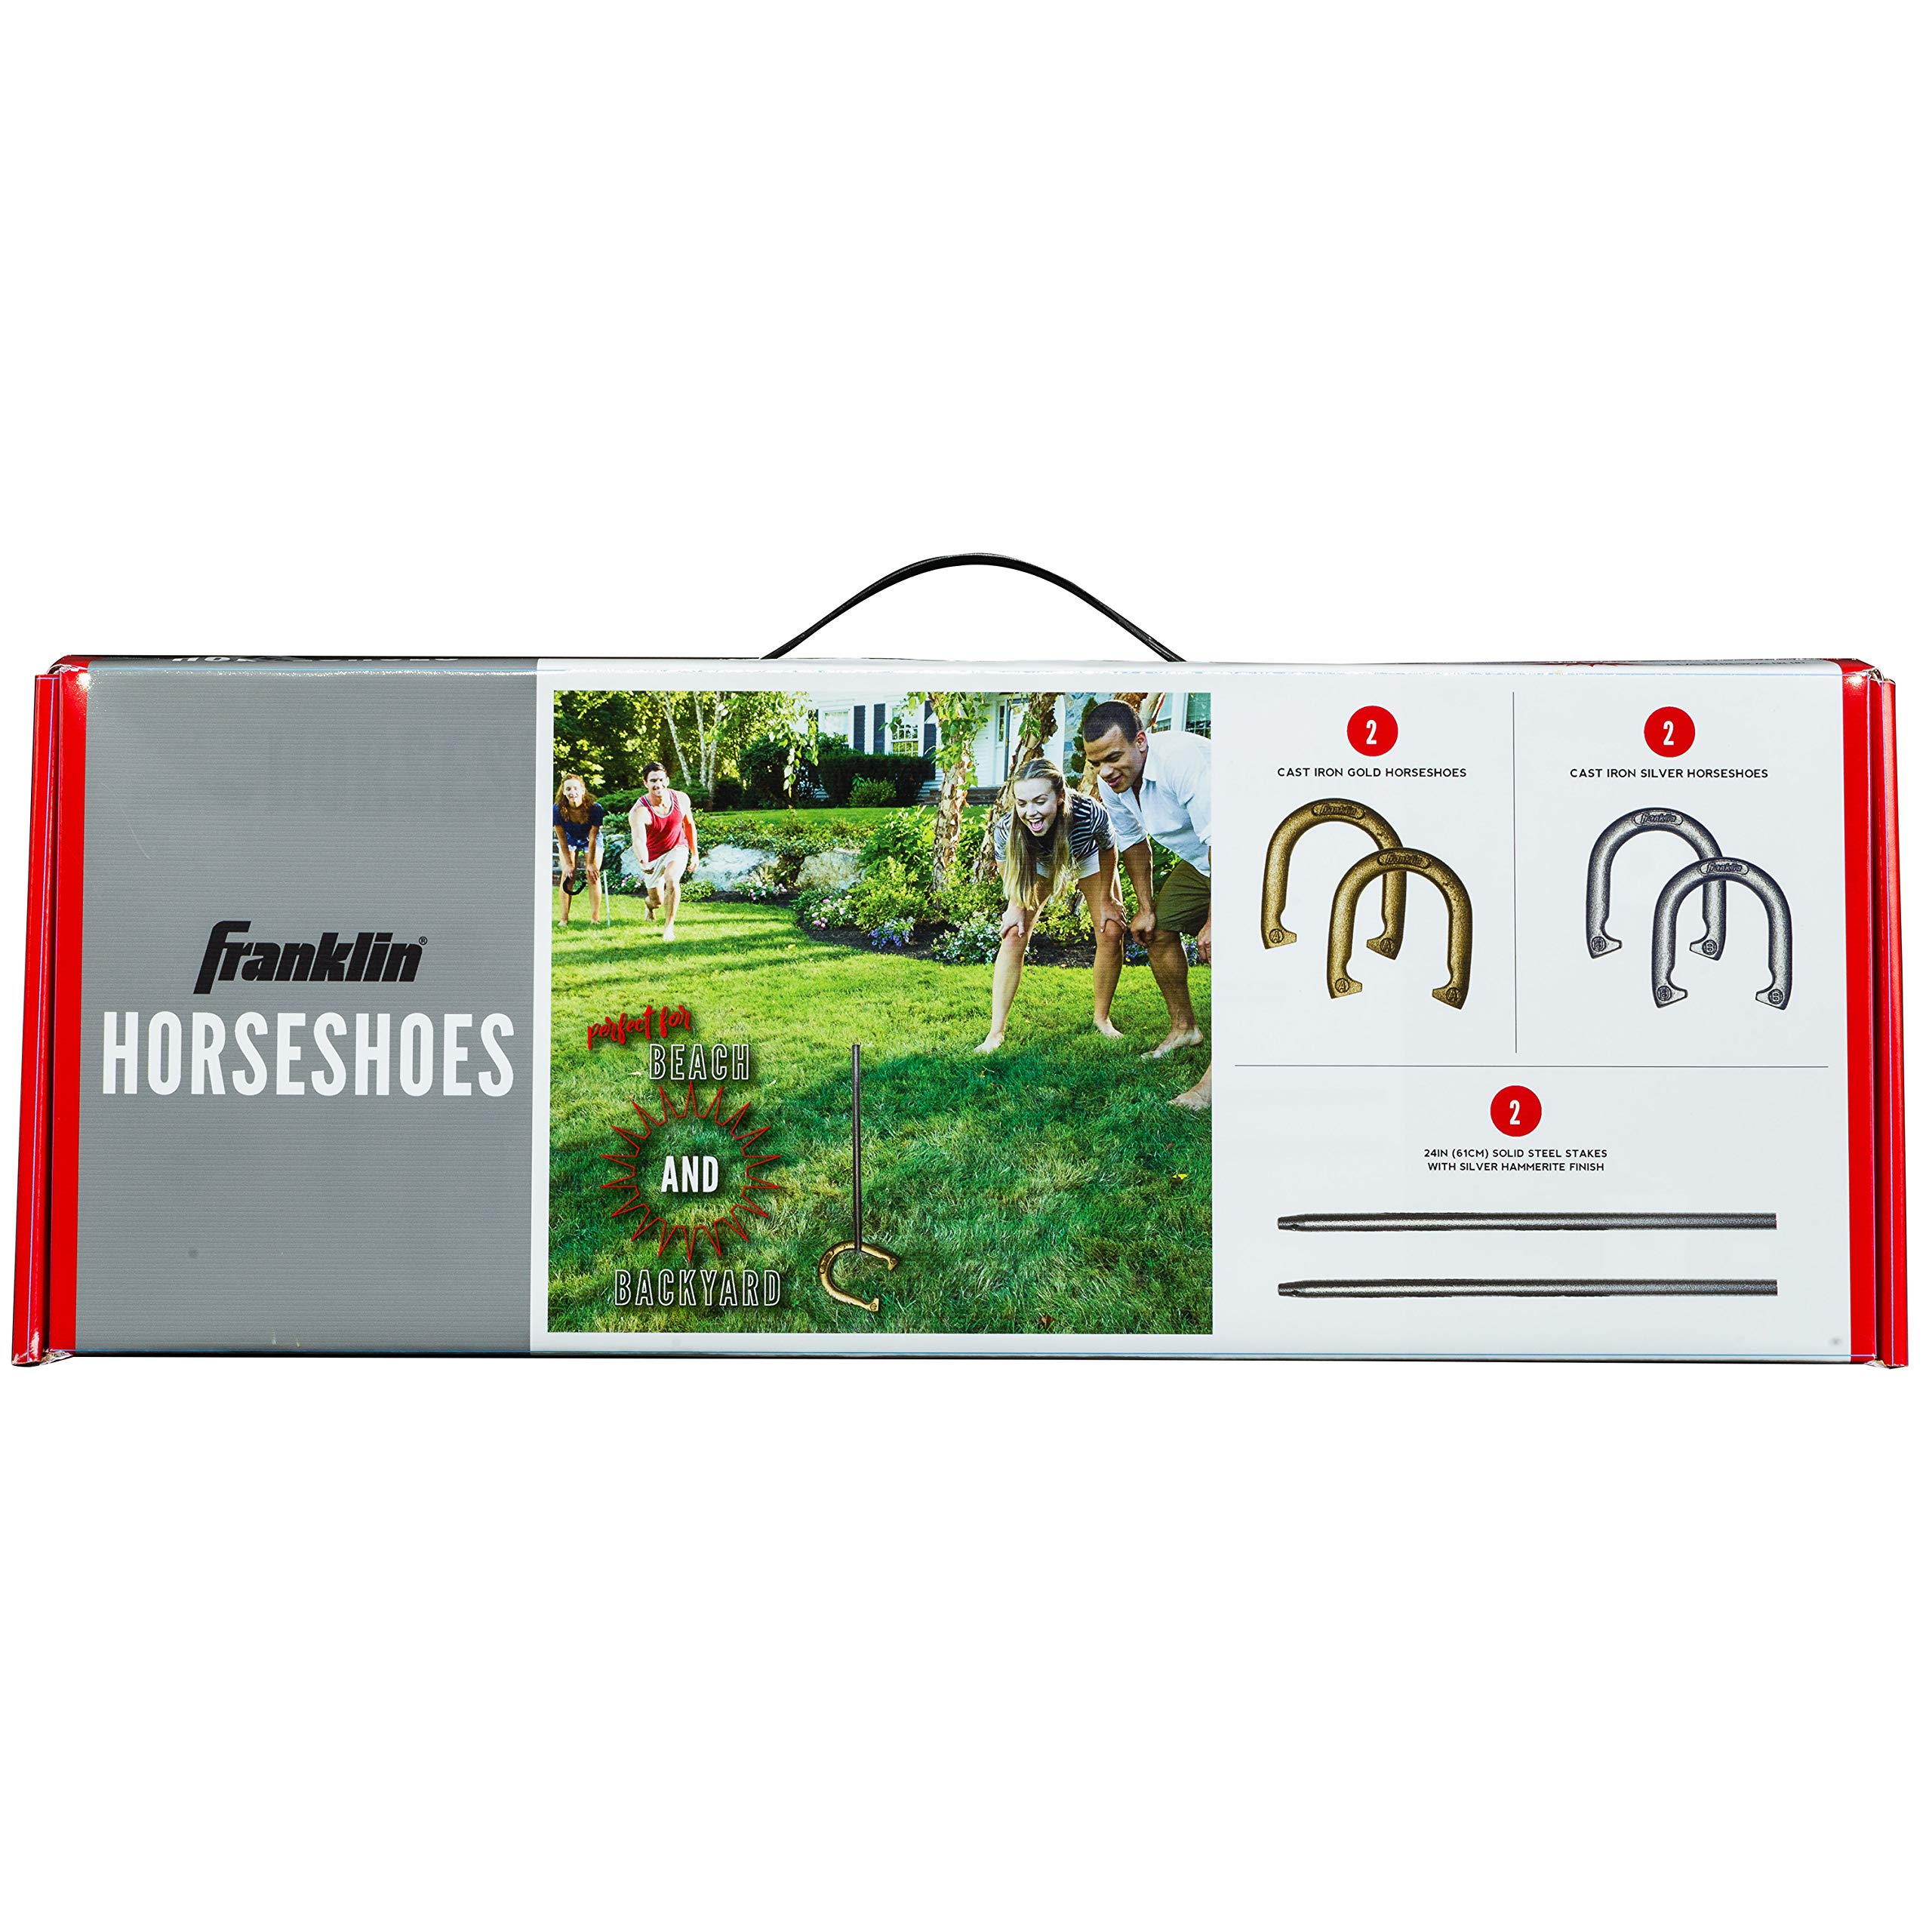 Franklin Sports Horseshoes Set - Includes 4 Official Size and Weight Iron Horseshoes and 2 Steel Stakes - Beach or Backyard Horseshoe Play - Starter Set by Franklin Sports (Image #6)